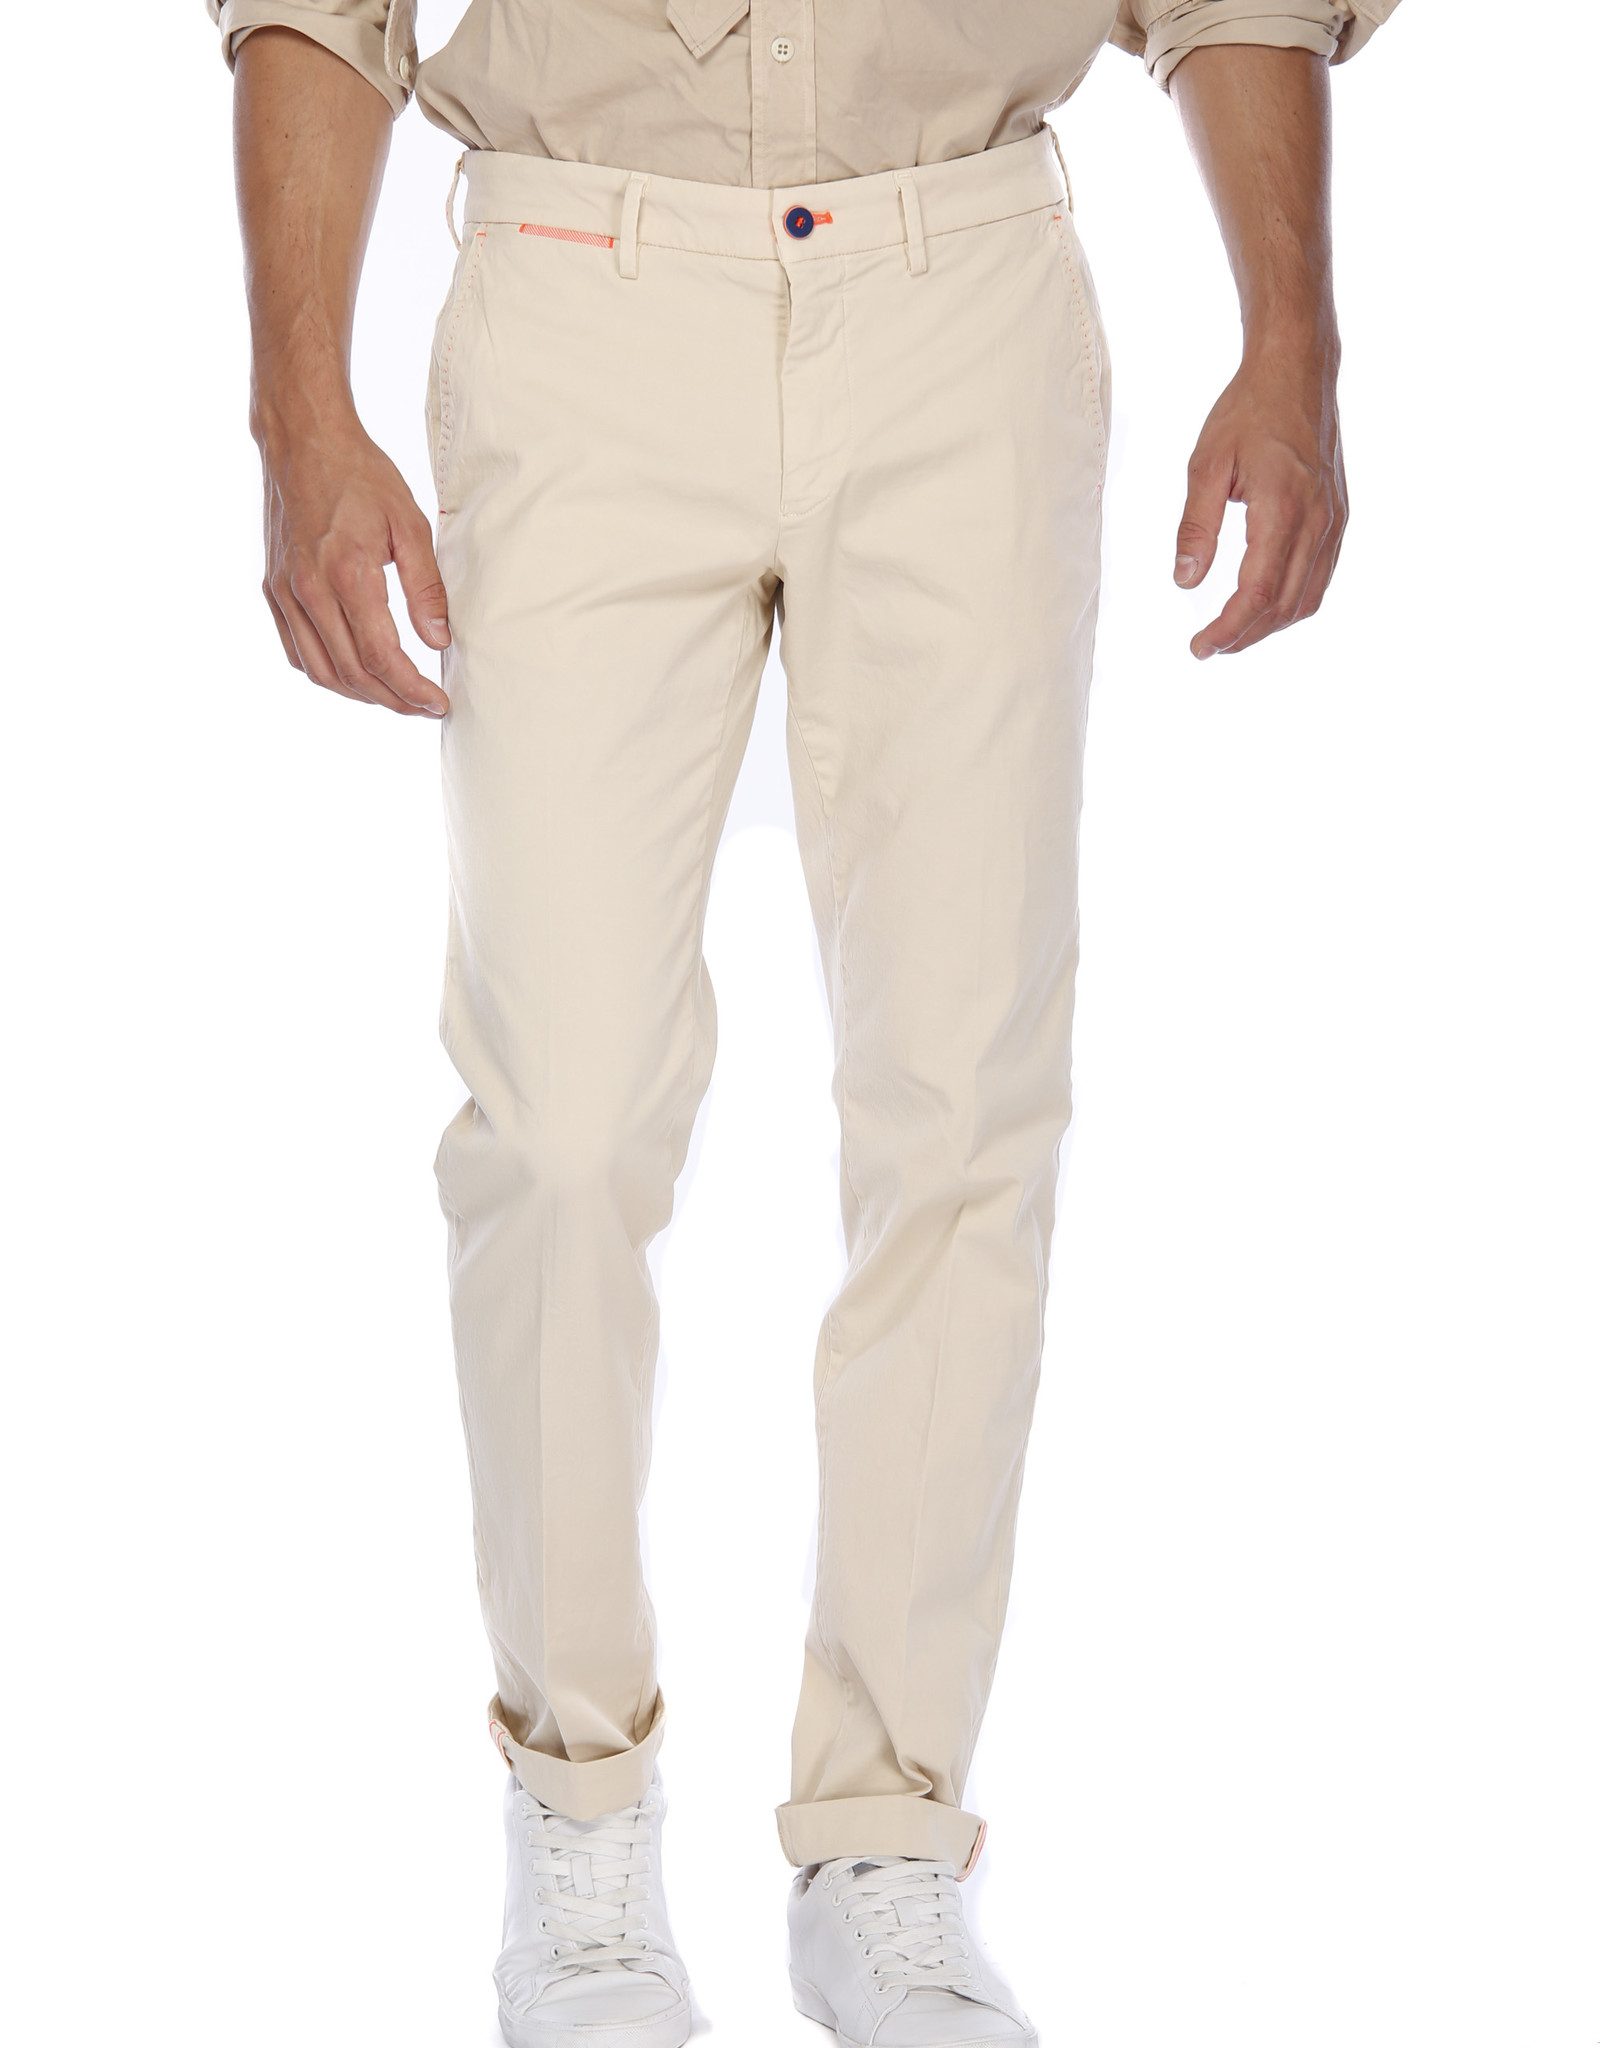 Mason's Chino Slim Fit